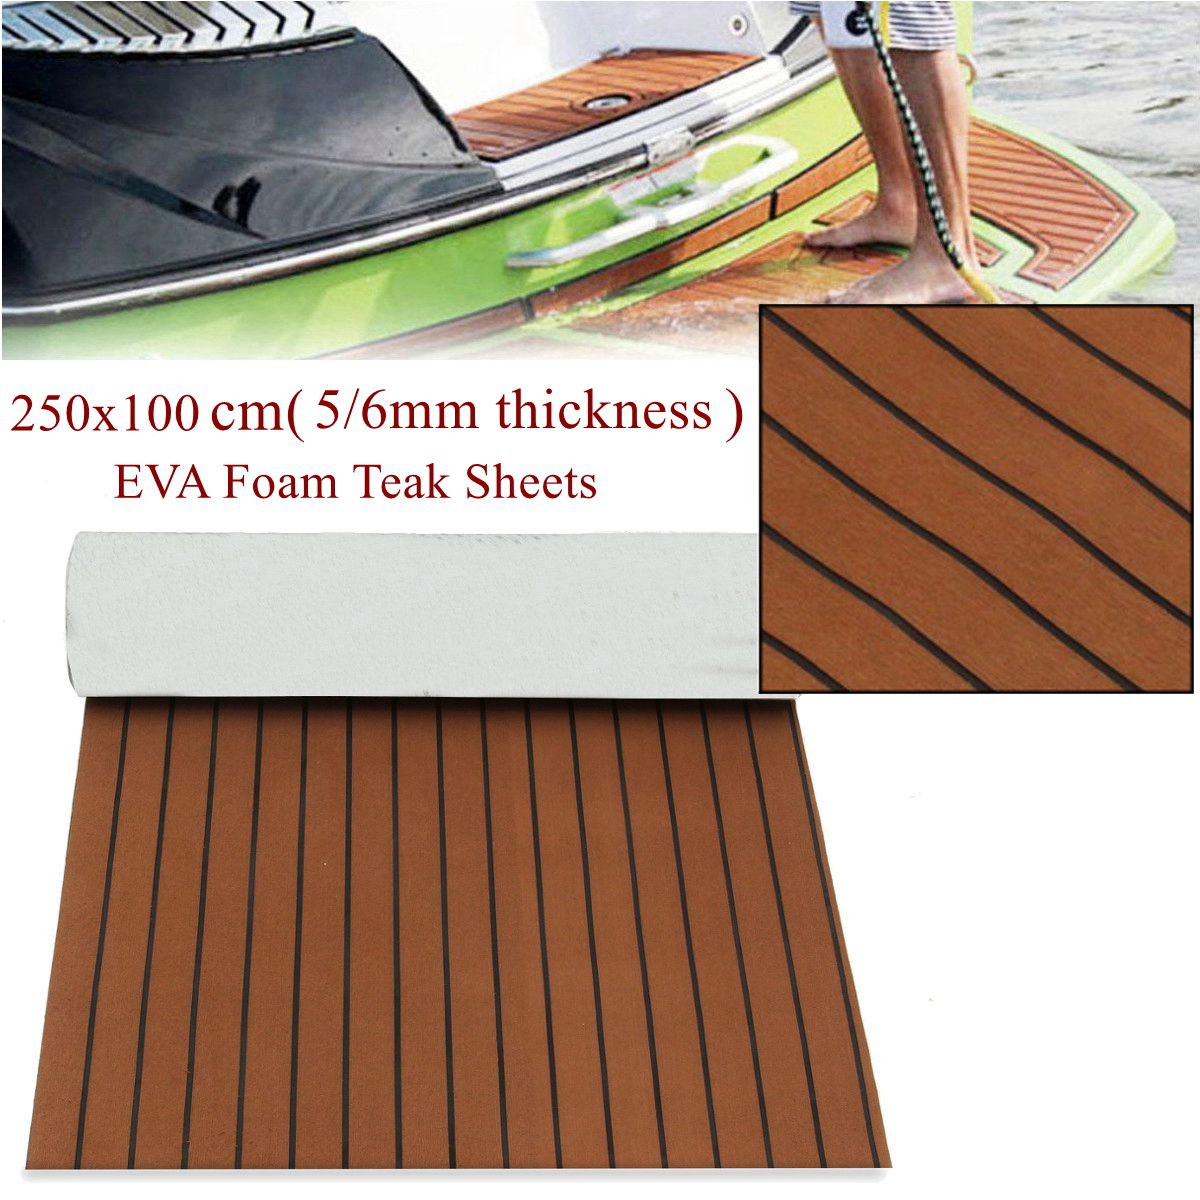 Self-Adhesive 2500x1000x6mm Foam Teak Decking EVA Foam Marine Flooring Faux Boat Decking Sheet Accessories Marine 3 Styles